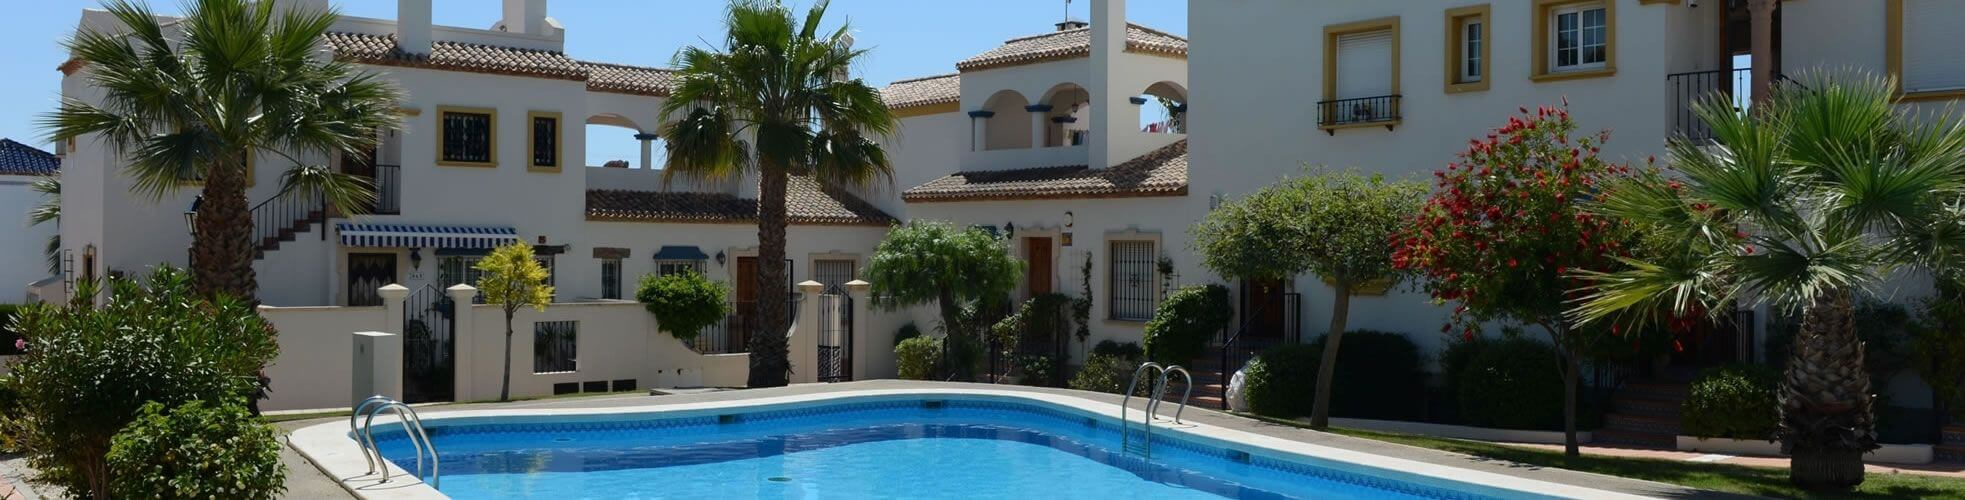 Exclusive property in Cabo Roig, La Zenia, Playa Flamenca and Campoamor